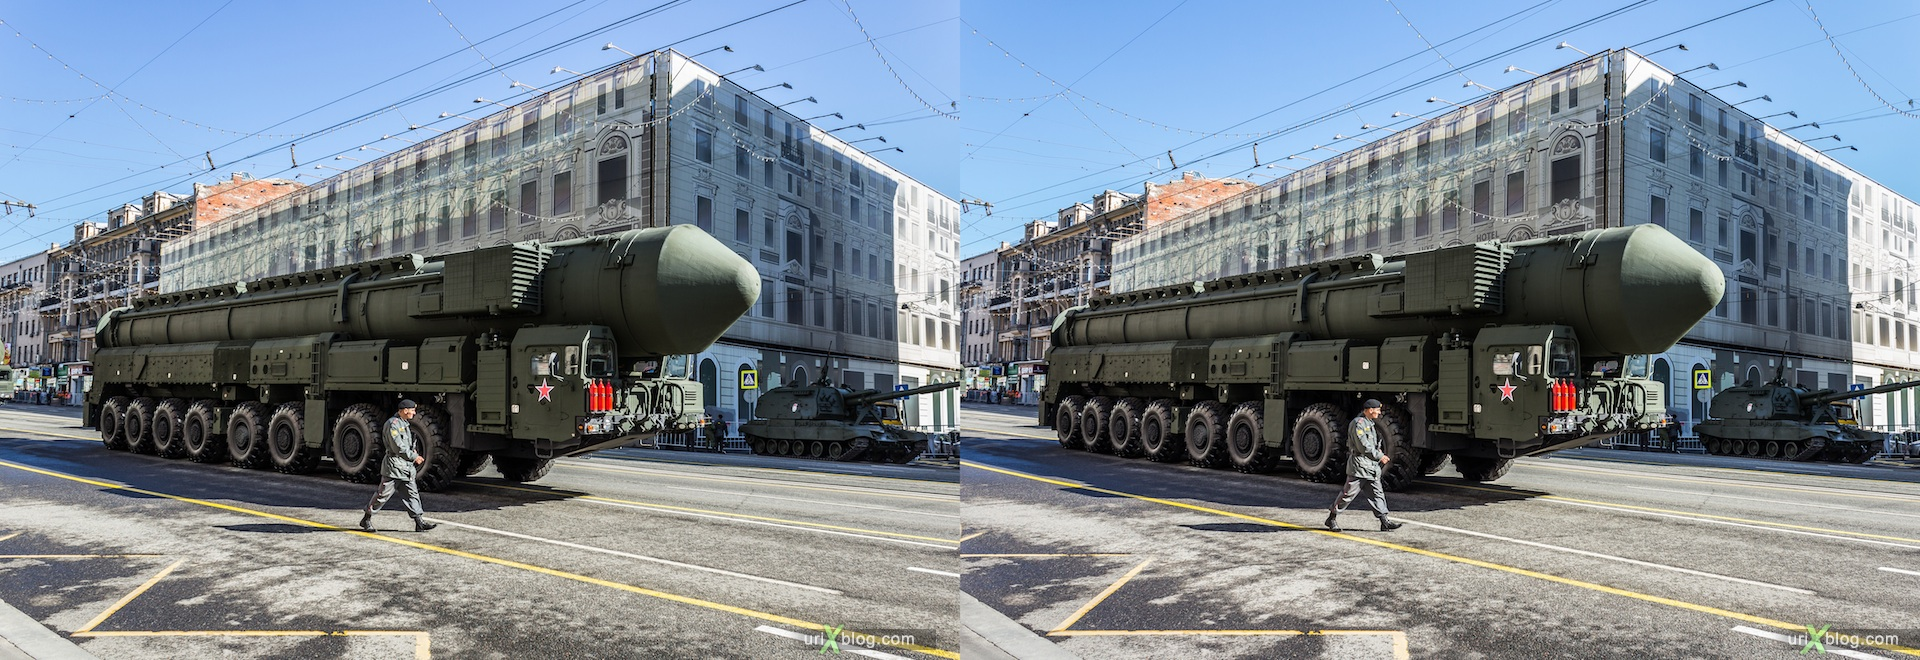 2013, Russia, Moscow, 9 may, parade training, Tverskaya street, preparations, military vehicles, tanks, soldiers, armored troop-carrier, 3D, stereo pair, cross-eyed, crossview, cross view stereo pair, stereoscopic